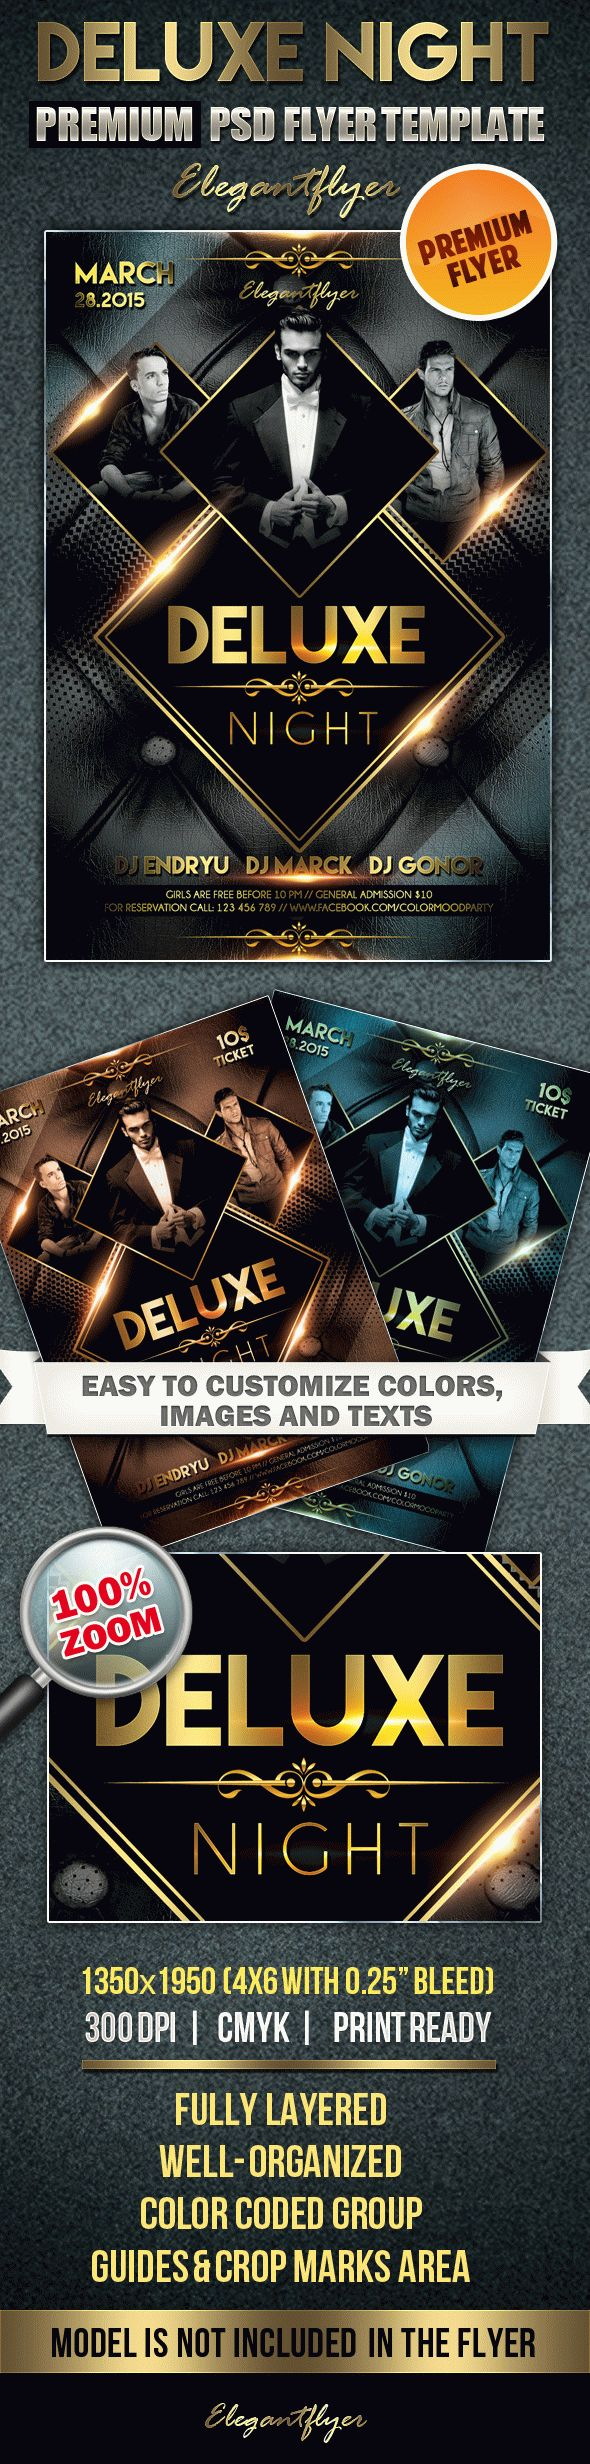 Deluxe night – Premium Club flyer PSD Template